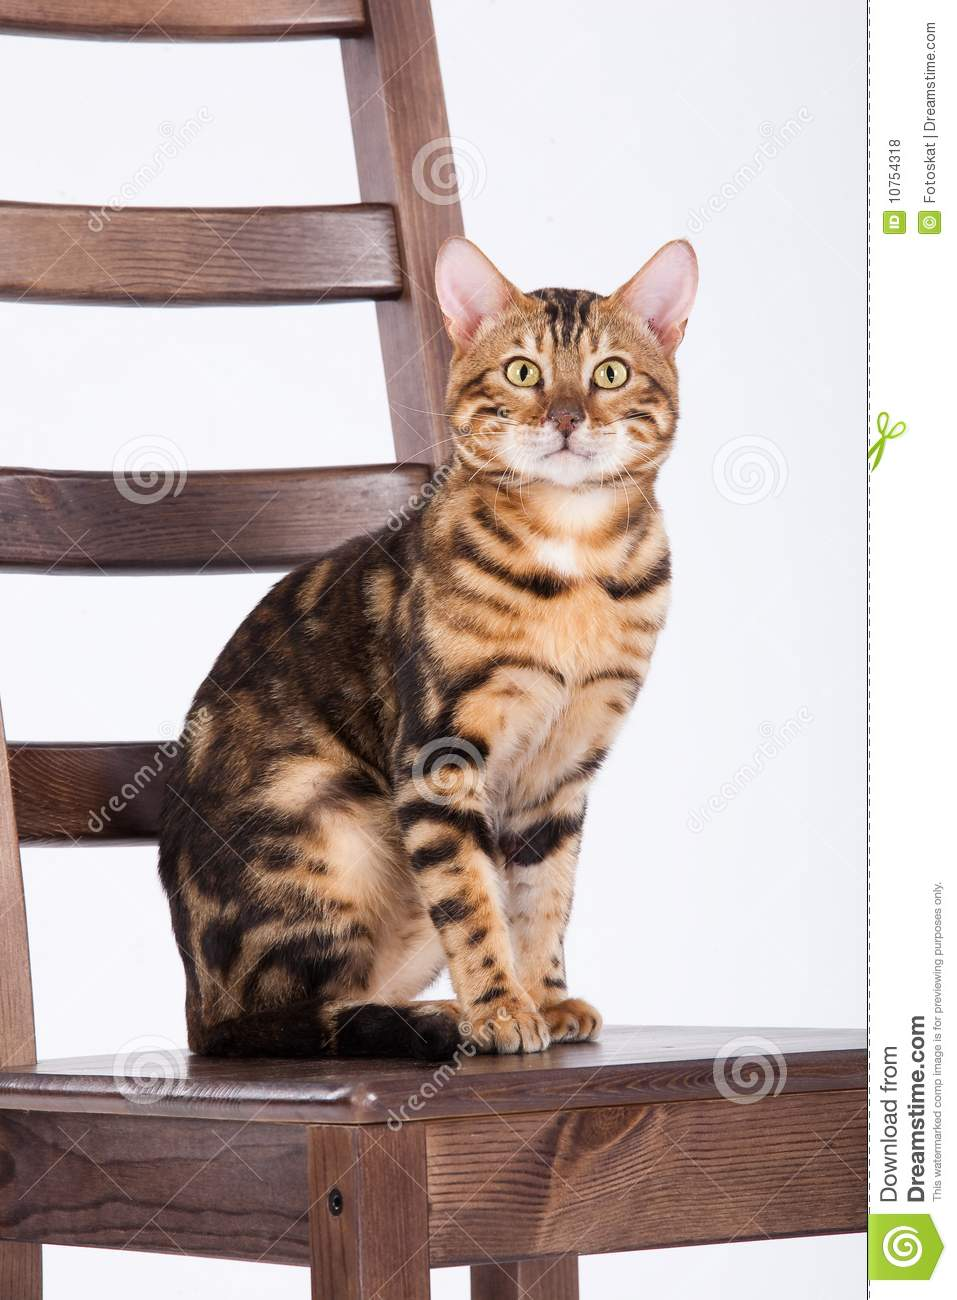 Leopard Cat On A Chair Royalty Free Stock Photos - Image: 10754318